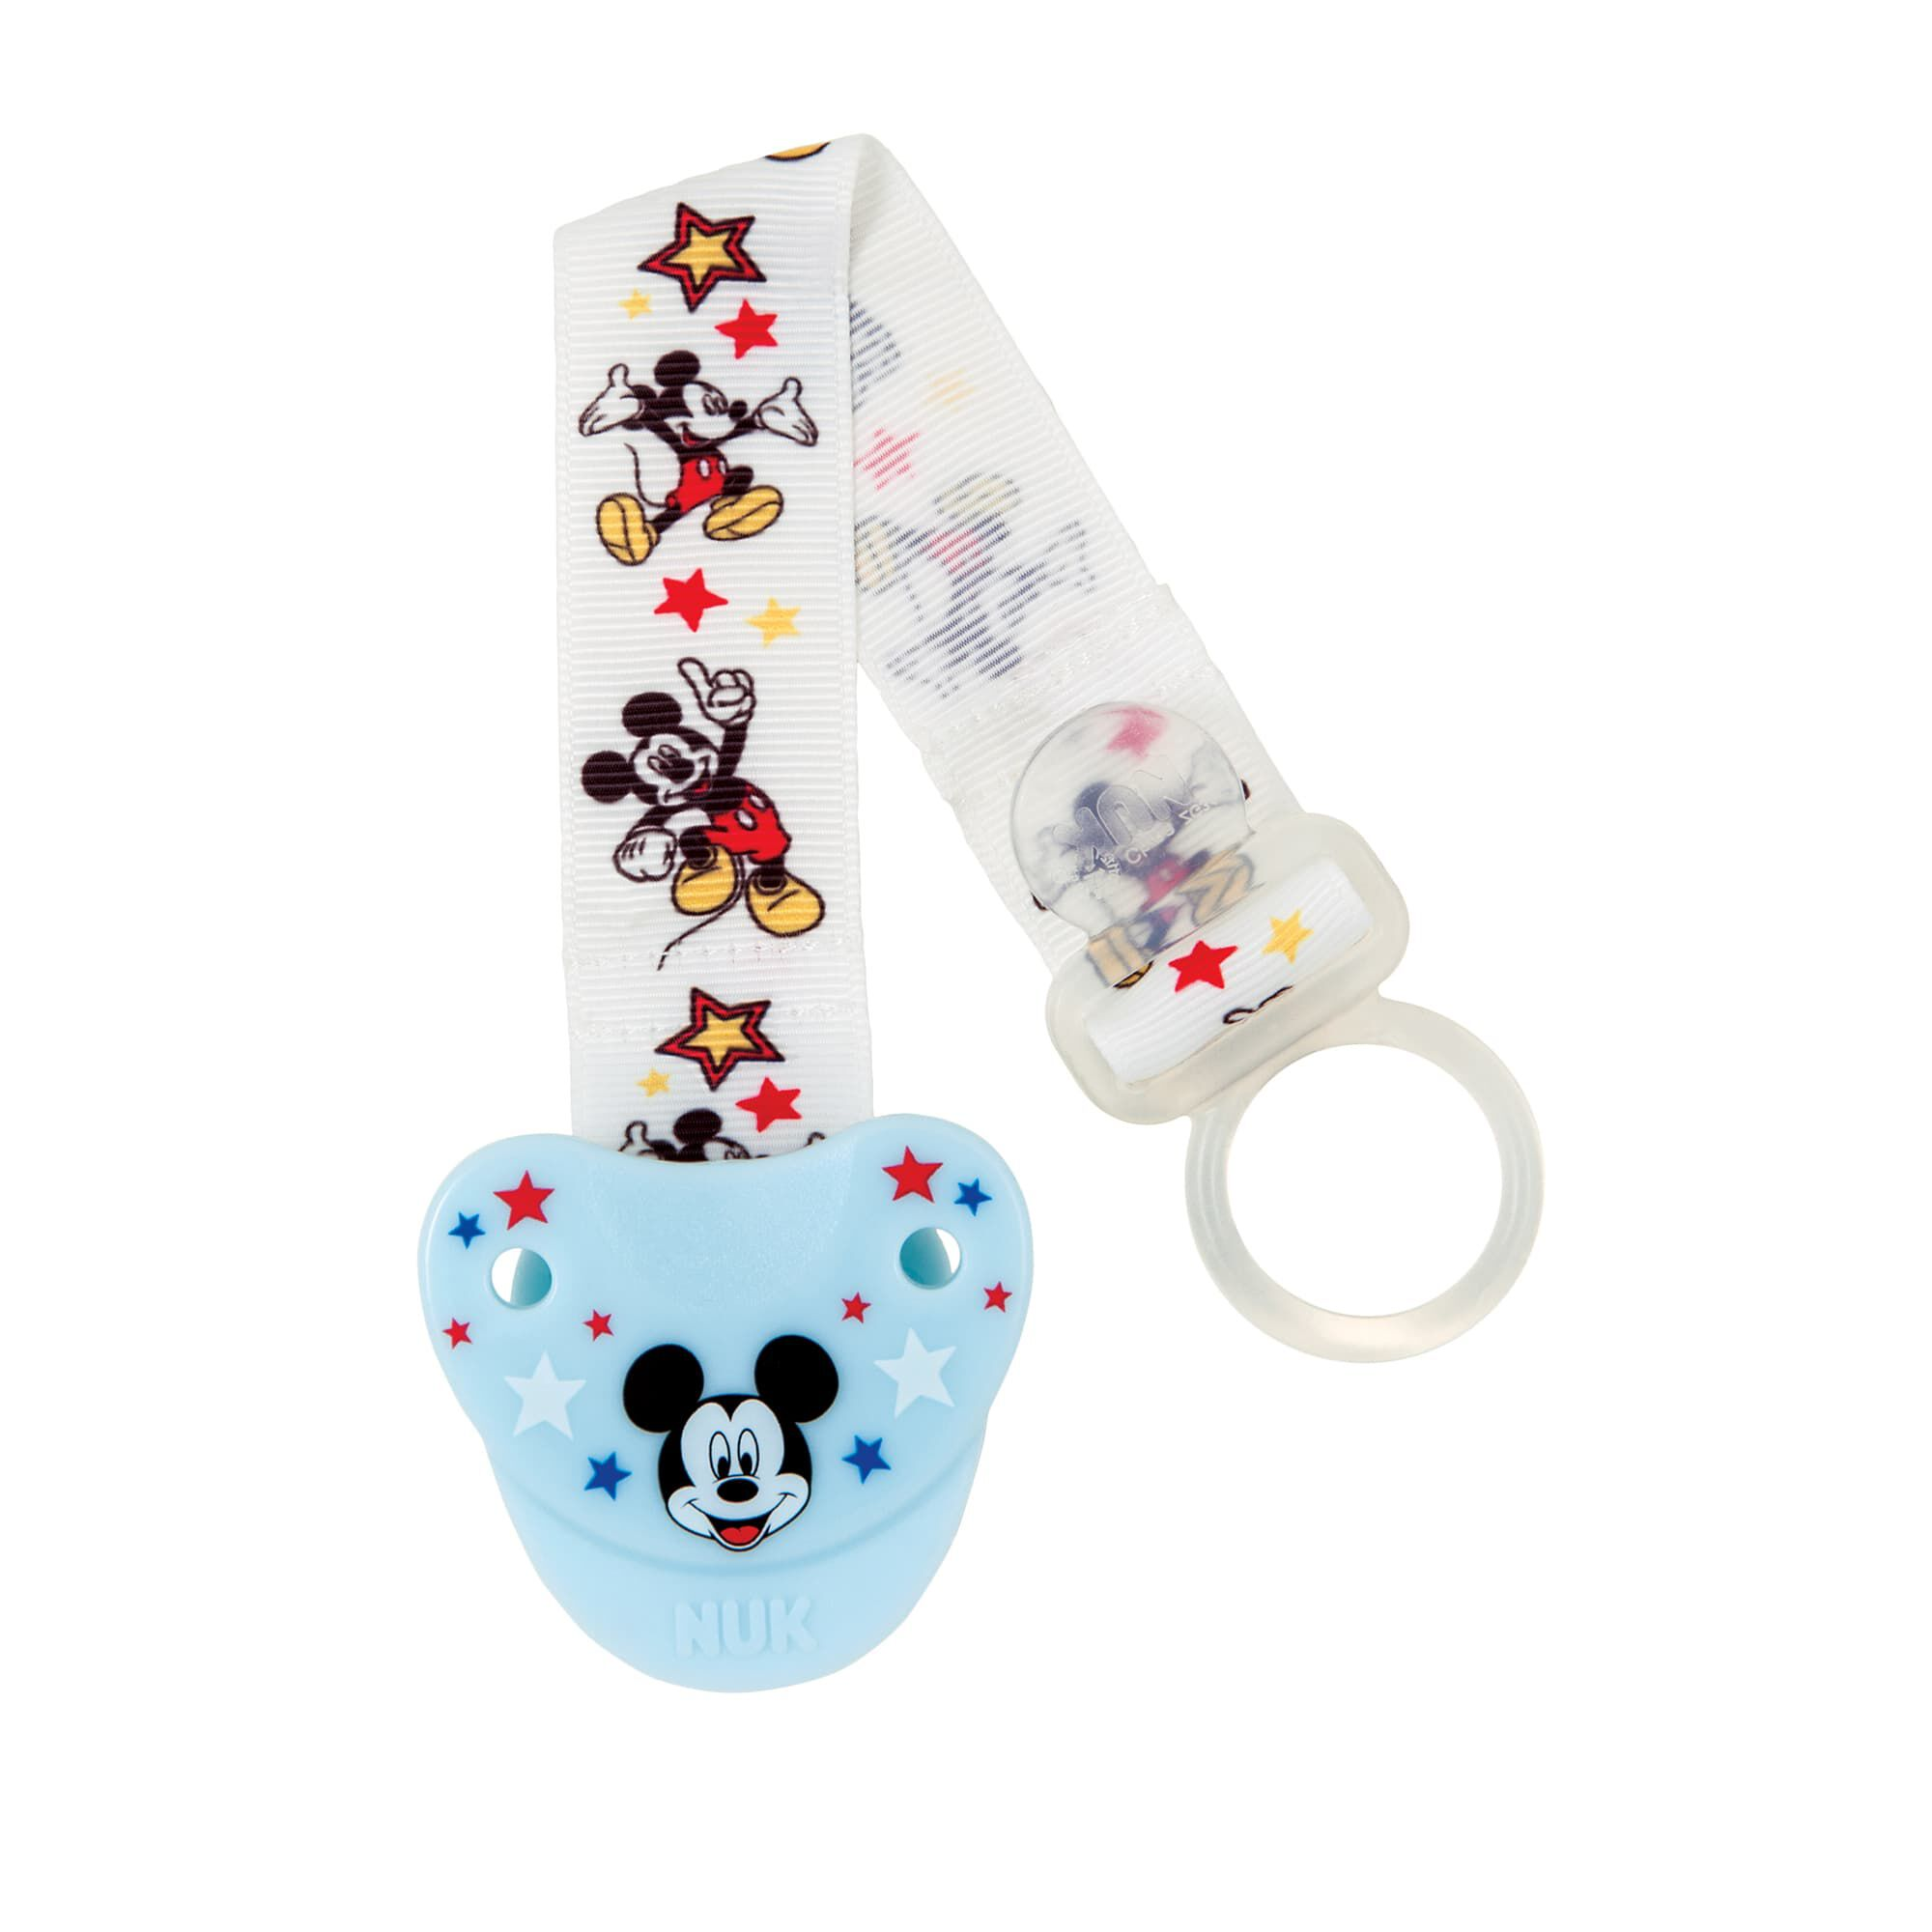 Disney Mickey Mouse Pacifier Clip Pacifiers Nuk